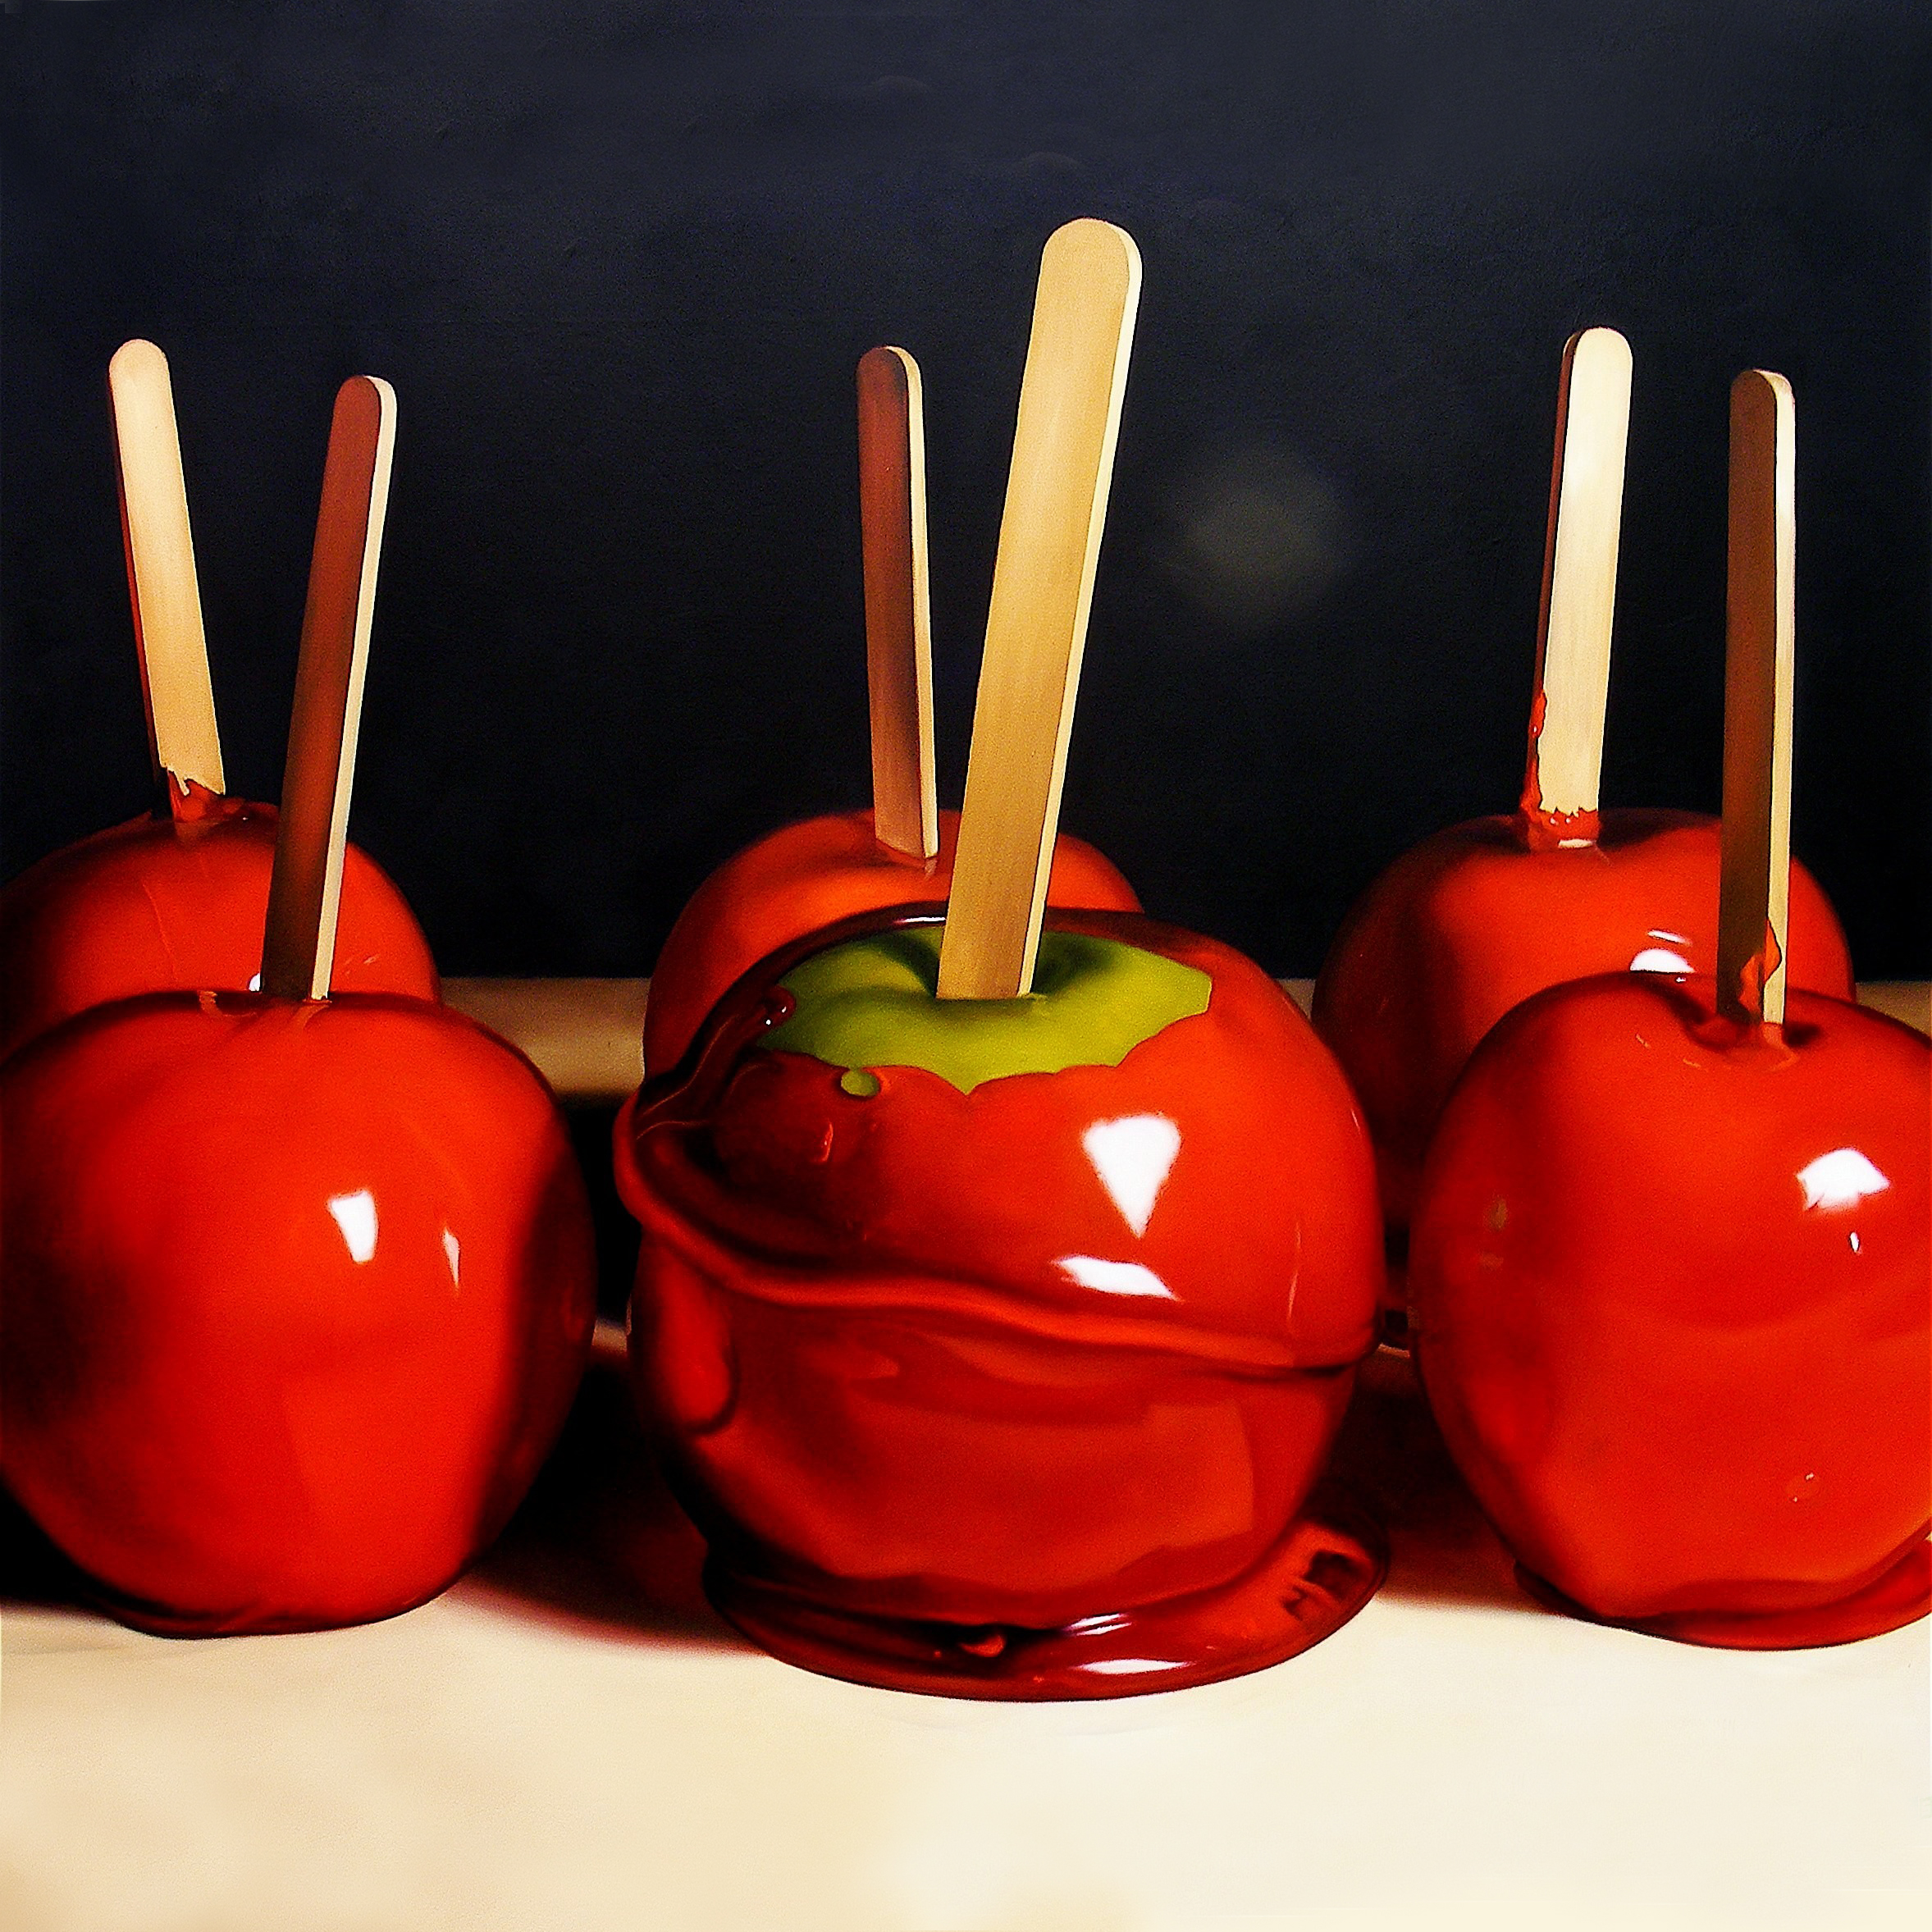 candy-apple-red.jpg